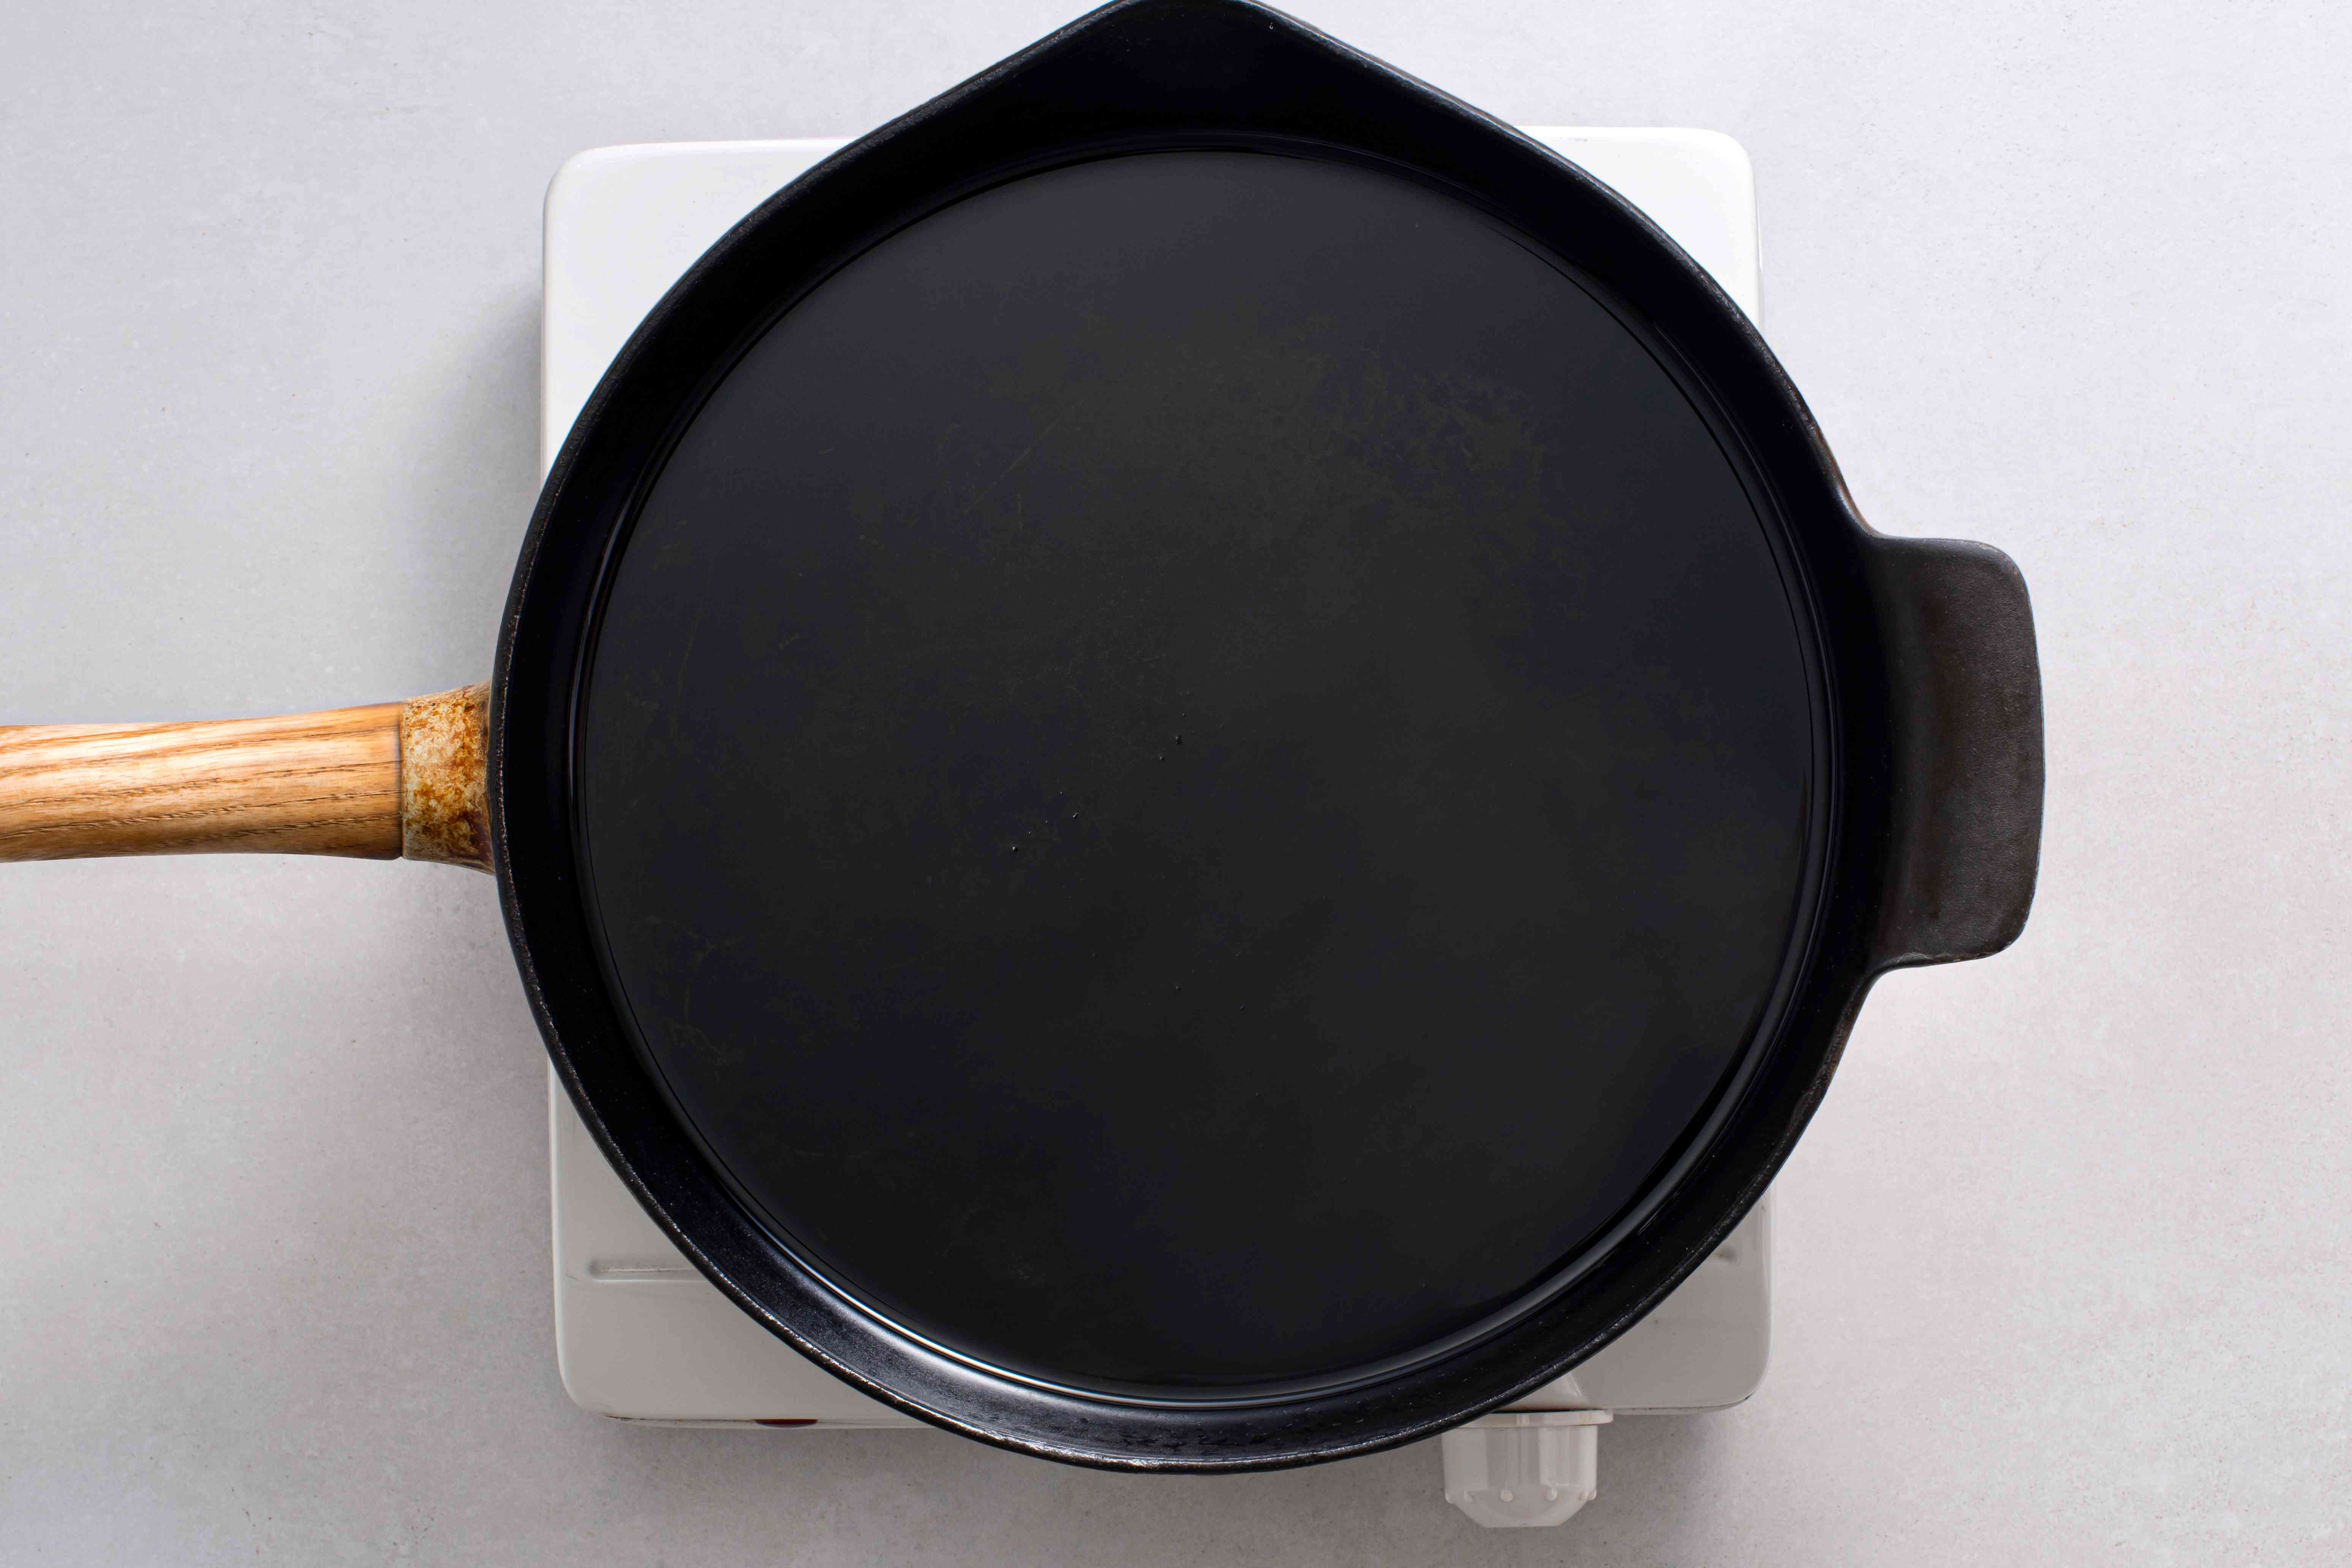 oil in a cast iron skillet